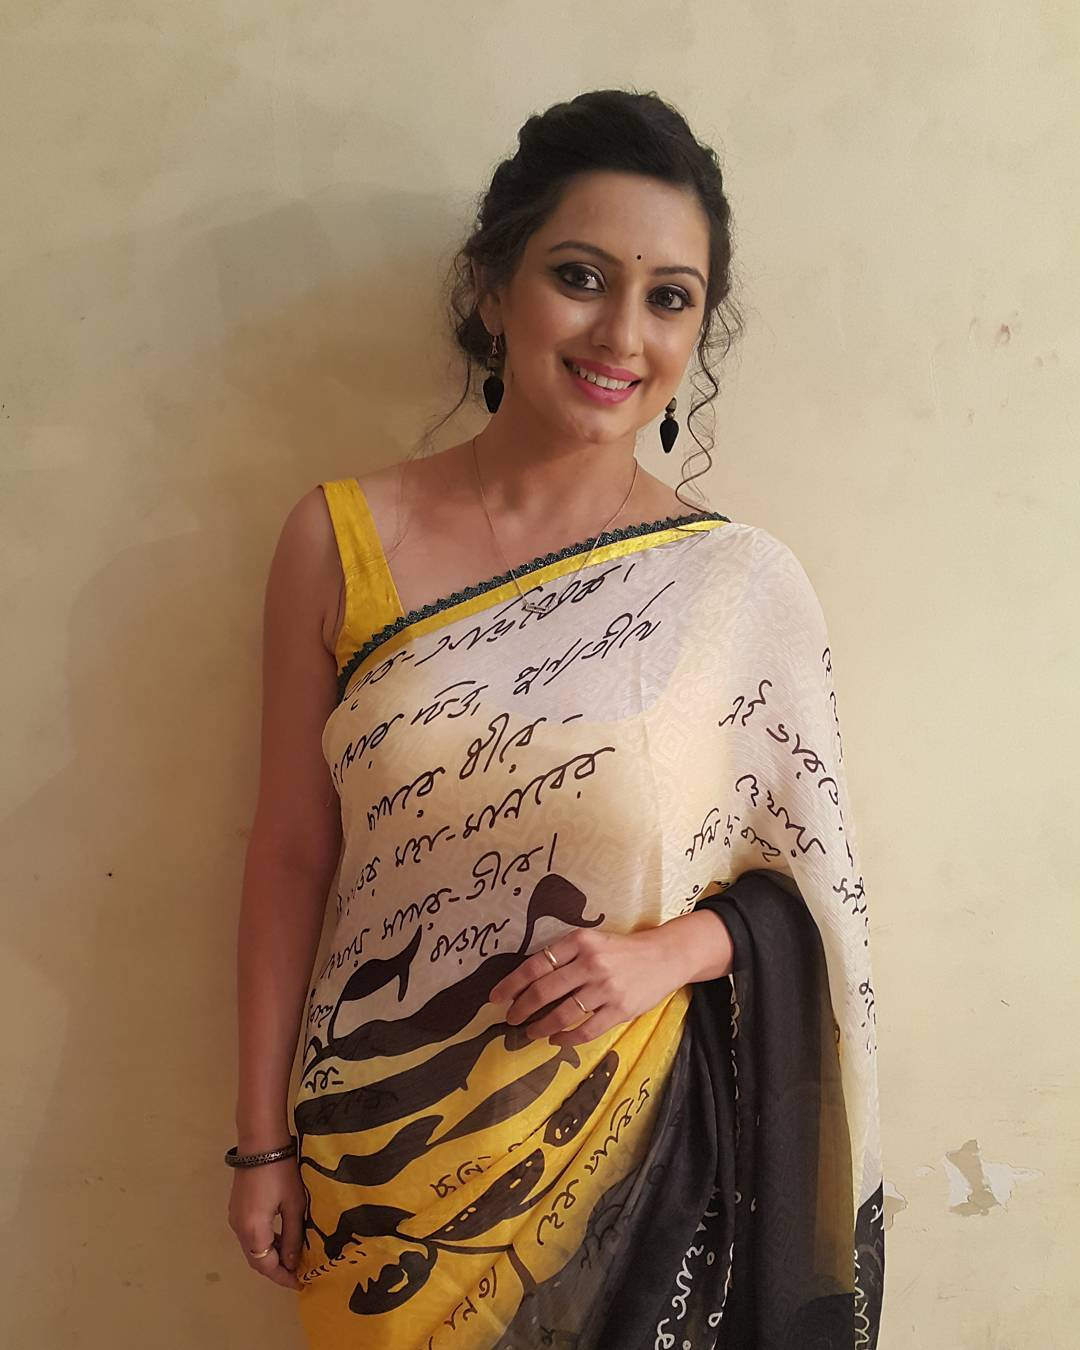 Shruti Marathe Pictures, Marathi serial actress, hot images of actress in saree, bold pic, Marathi actress, Marathi girl photo, actress hot photos, Marathi heroine, Marathi girl image, Shruti photo, Shruti Marathe, heroine images, Indian actress pics, actress wallpaper, actress hot photos, Indian actress hot pics, Indian heroine photo, bikini actress,   Shruti Marathe HD, Gorgeous, High Quality, Sexy, Hot, Lovely, Cute, Sweet, Awesome, unseen, Viral, Oops, Smart, Beautiful Pics, Shruti Marathe Unique photos collection, Shruti Marathe Hot Pics, Shruti Marathe Awesome Pics,